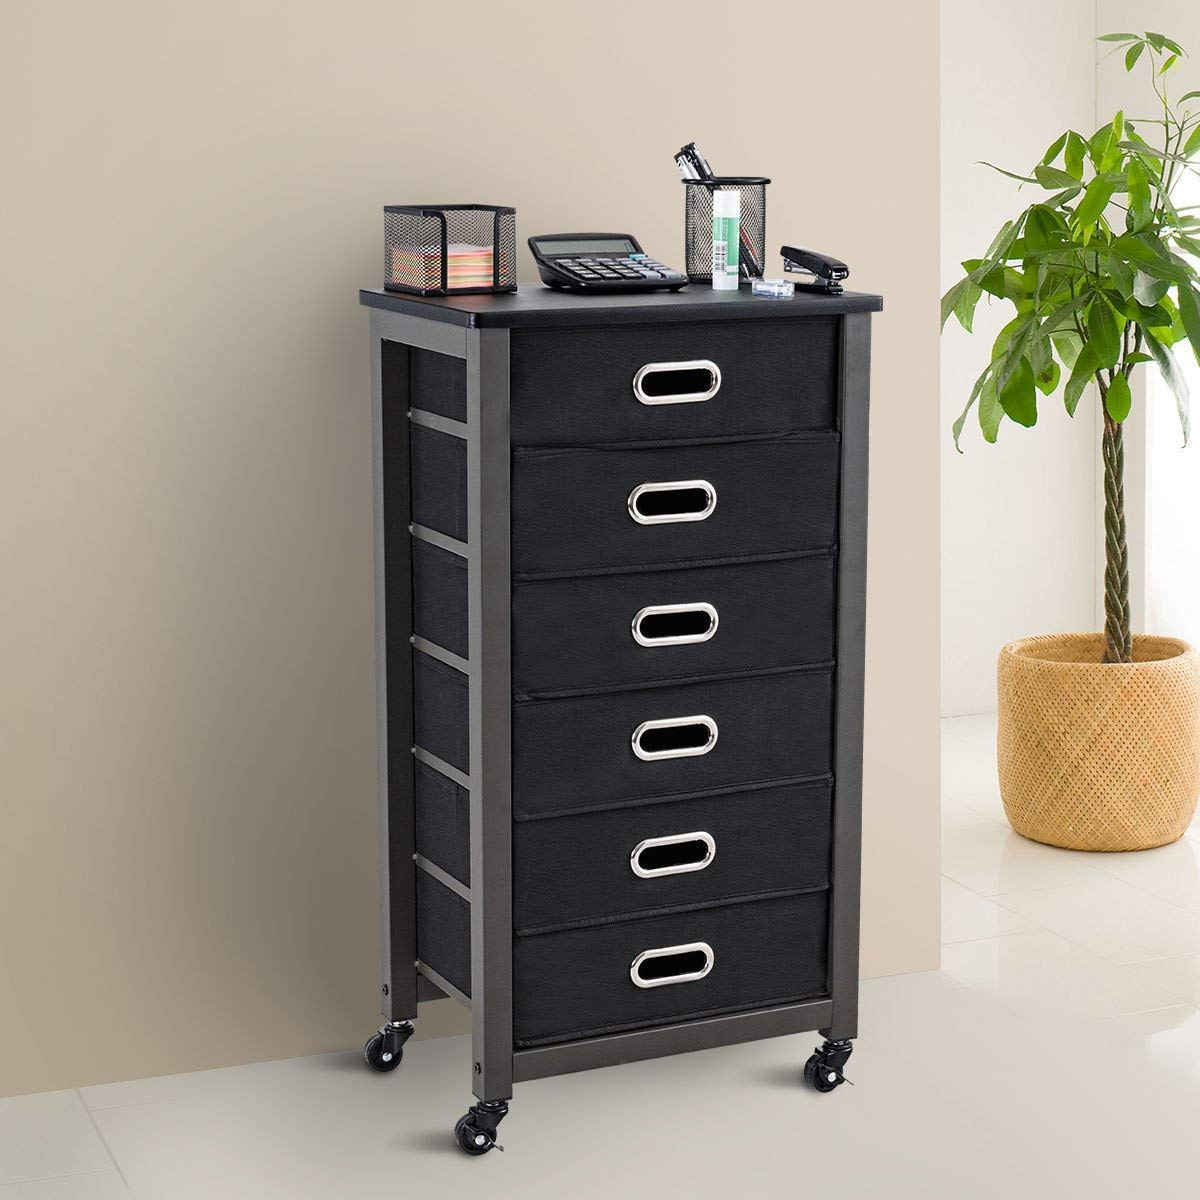 6-Drawer Mobile File Cabinet Home Office Vertical Furniture with Lockable Rolling Casters Lock Wheels Heavy Duty Rust Resistant Metal Frame Storage Letter Filing Cabinet Organizer BeUniqueToday